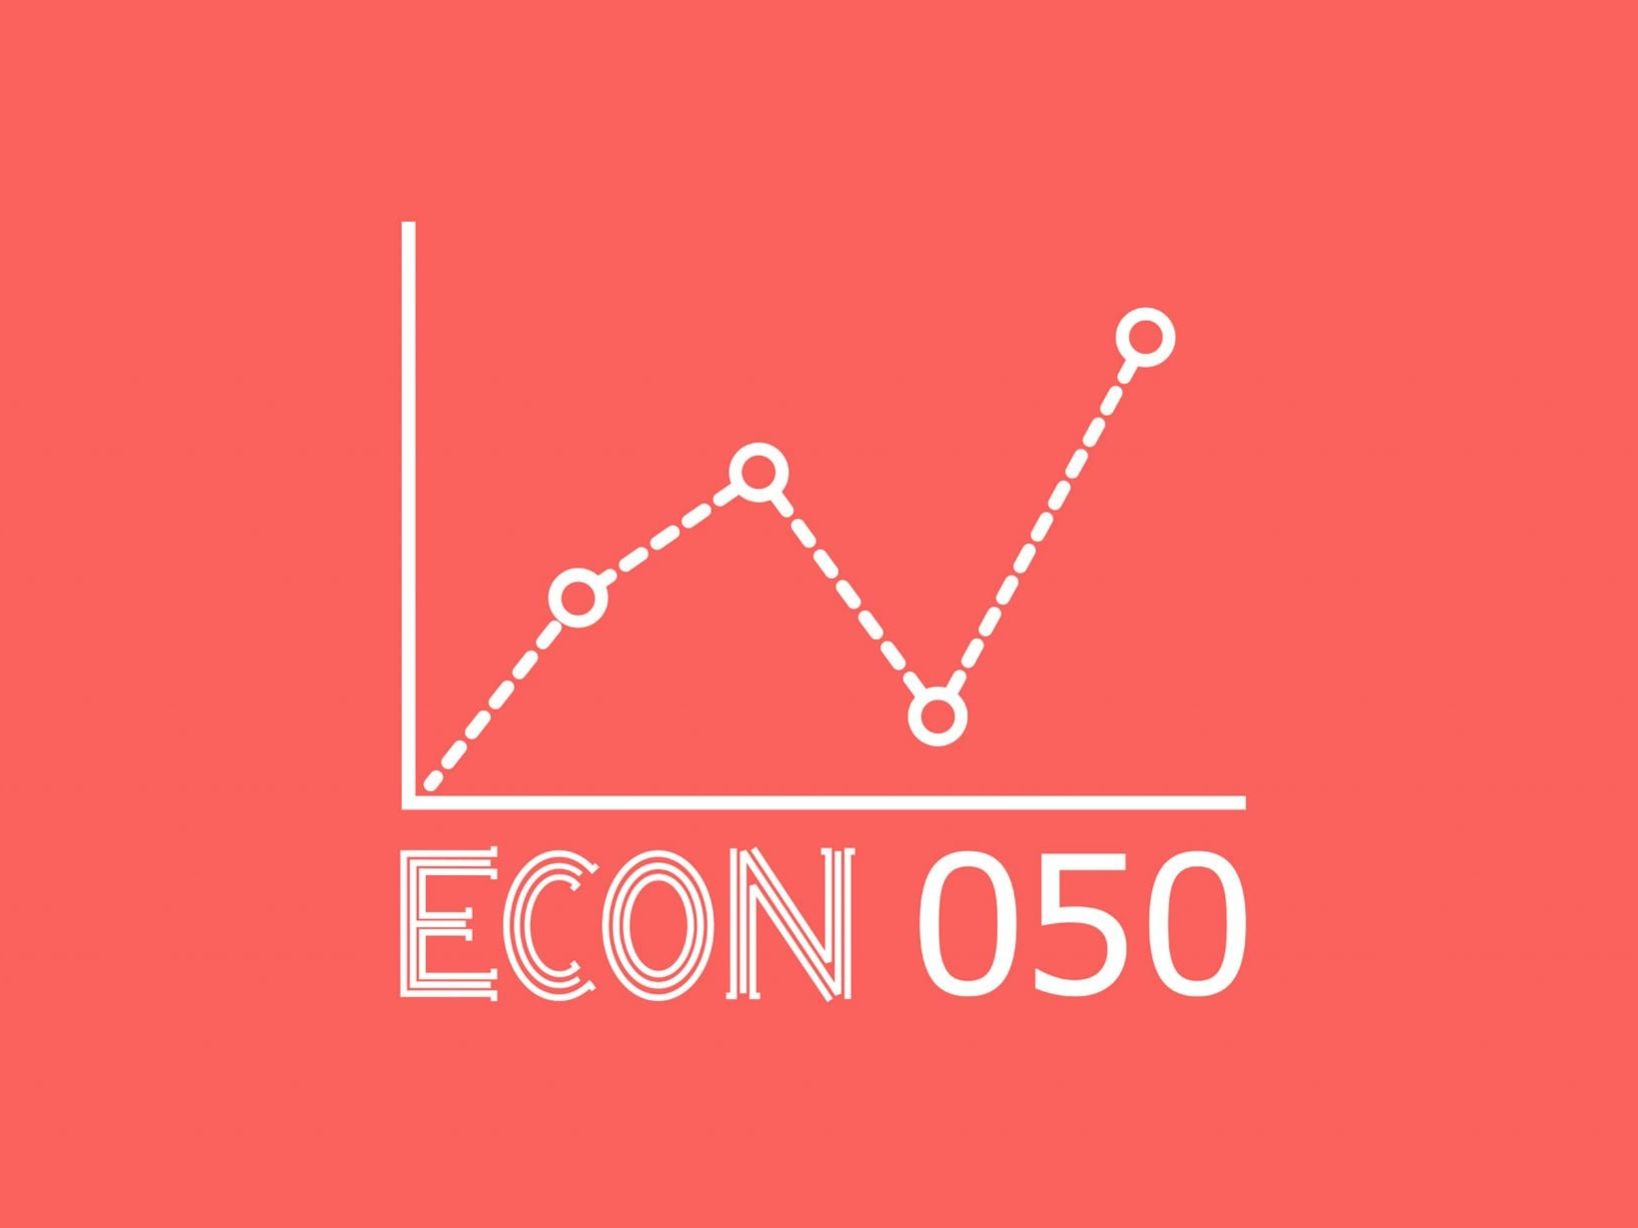 Econ 050 is a podcast on the economics and business news that matters to the Netherlands and the wider world, made by the Faculty of Economics and Business and the Northern Times.